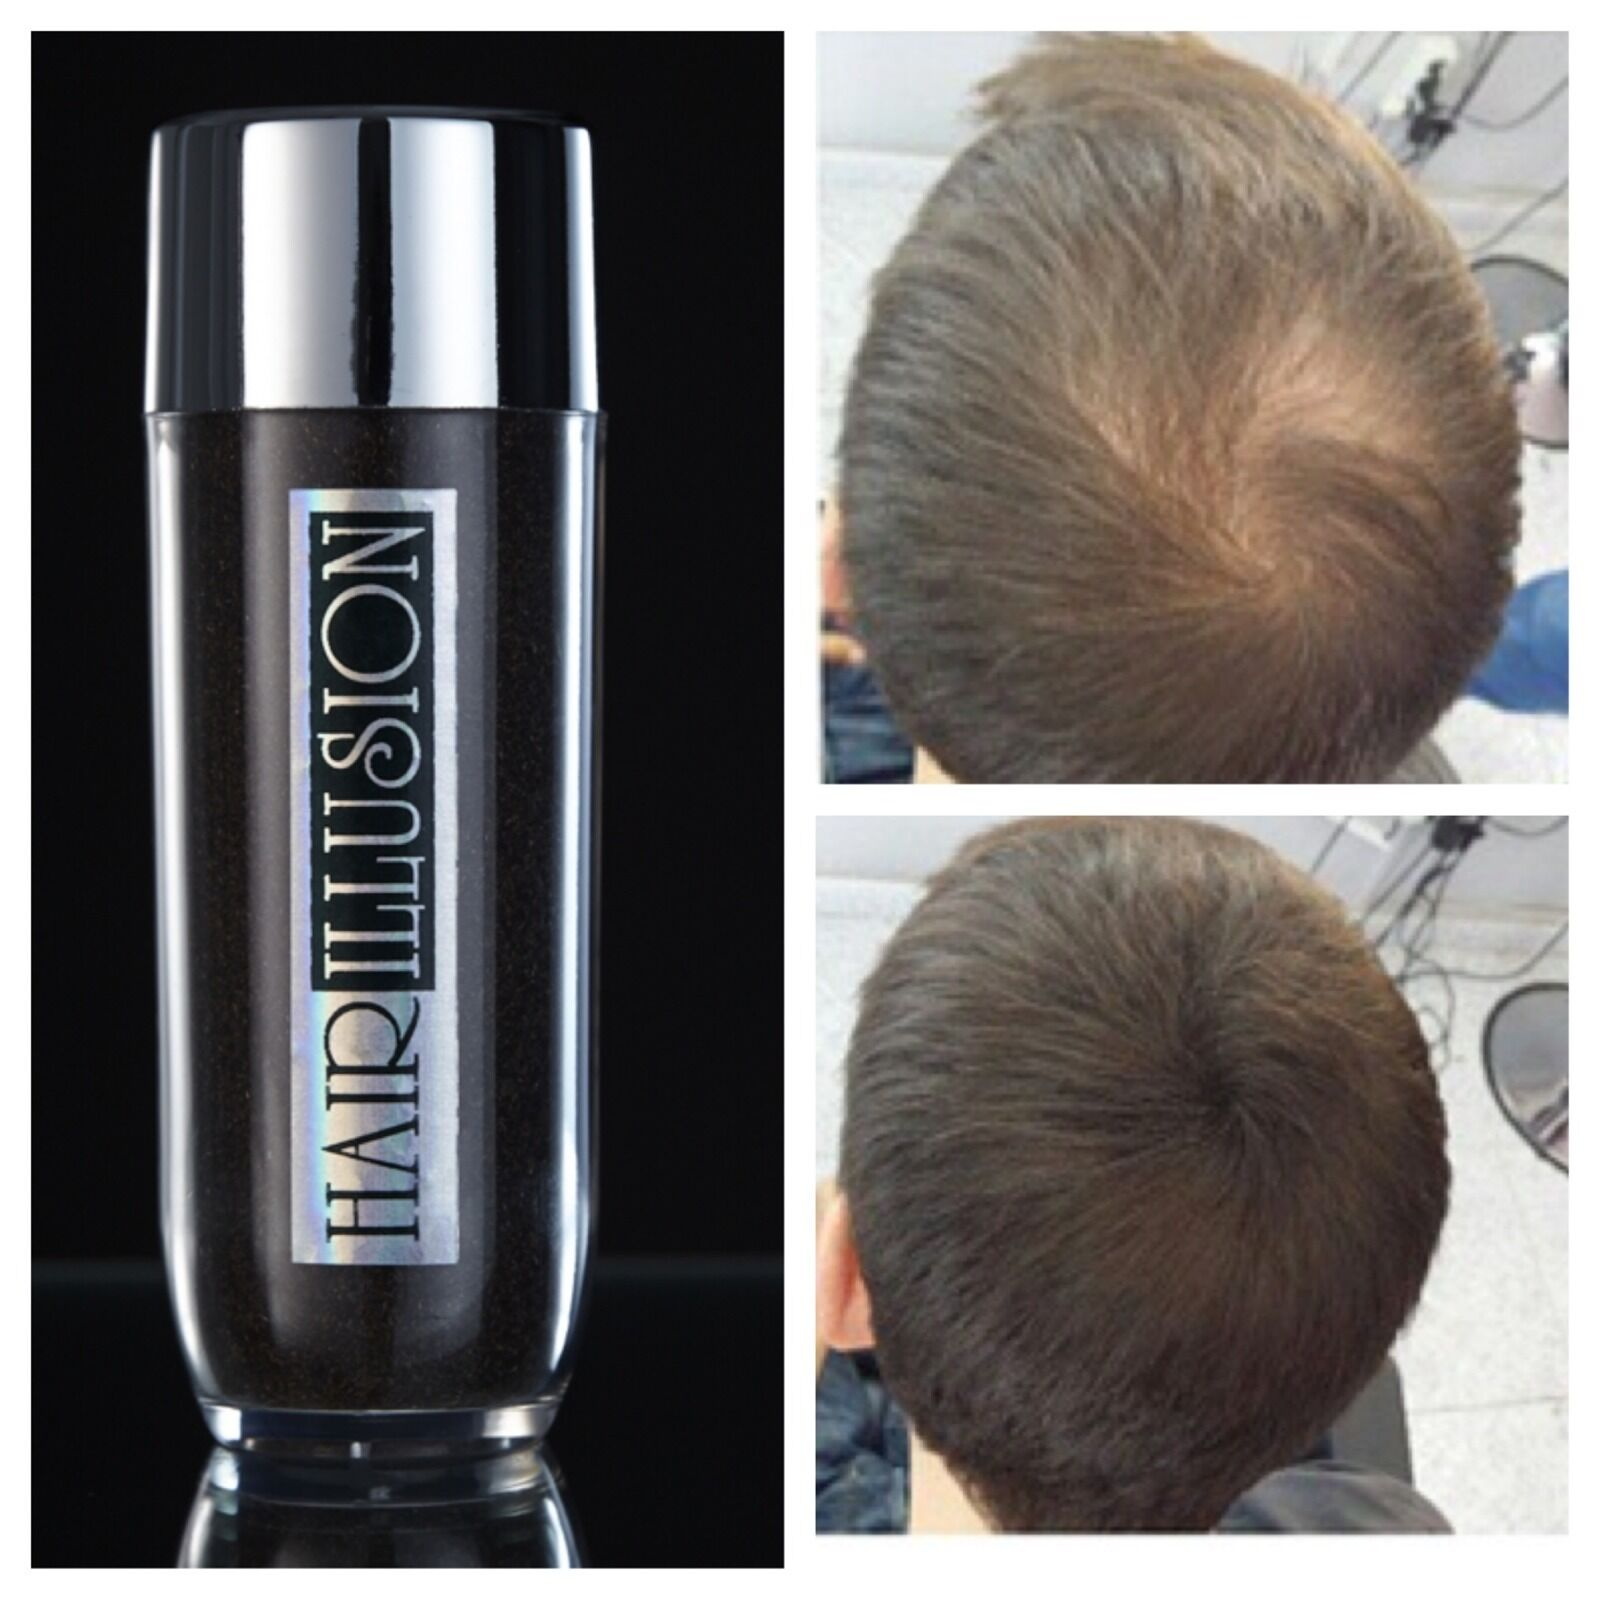 hair illusion 38.5g large hair building fibers concealer for bald